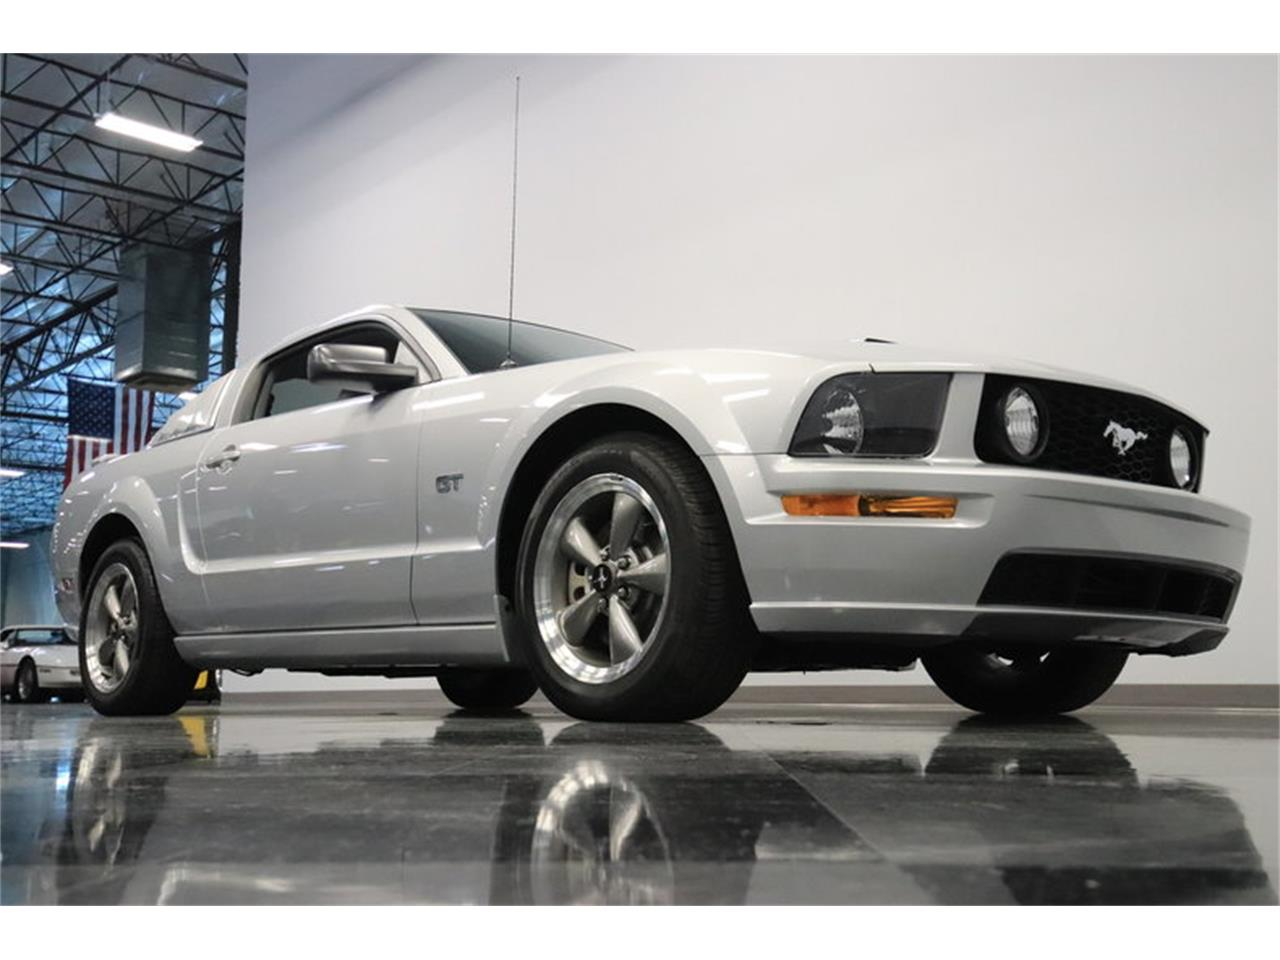 Large Picture of '05 Ford Mustang GT located in Arizona Offered by Streetside Classics - Phoenix - MOAI